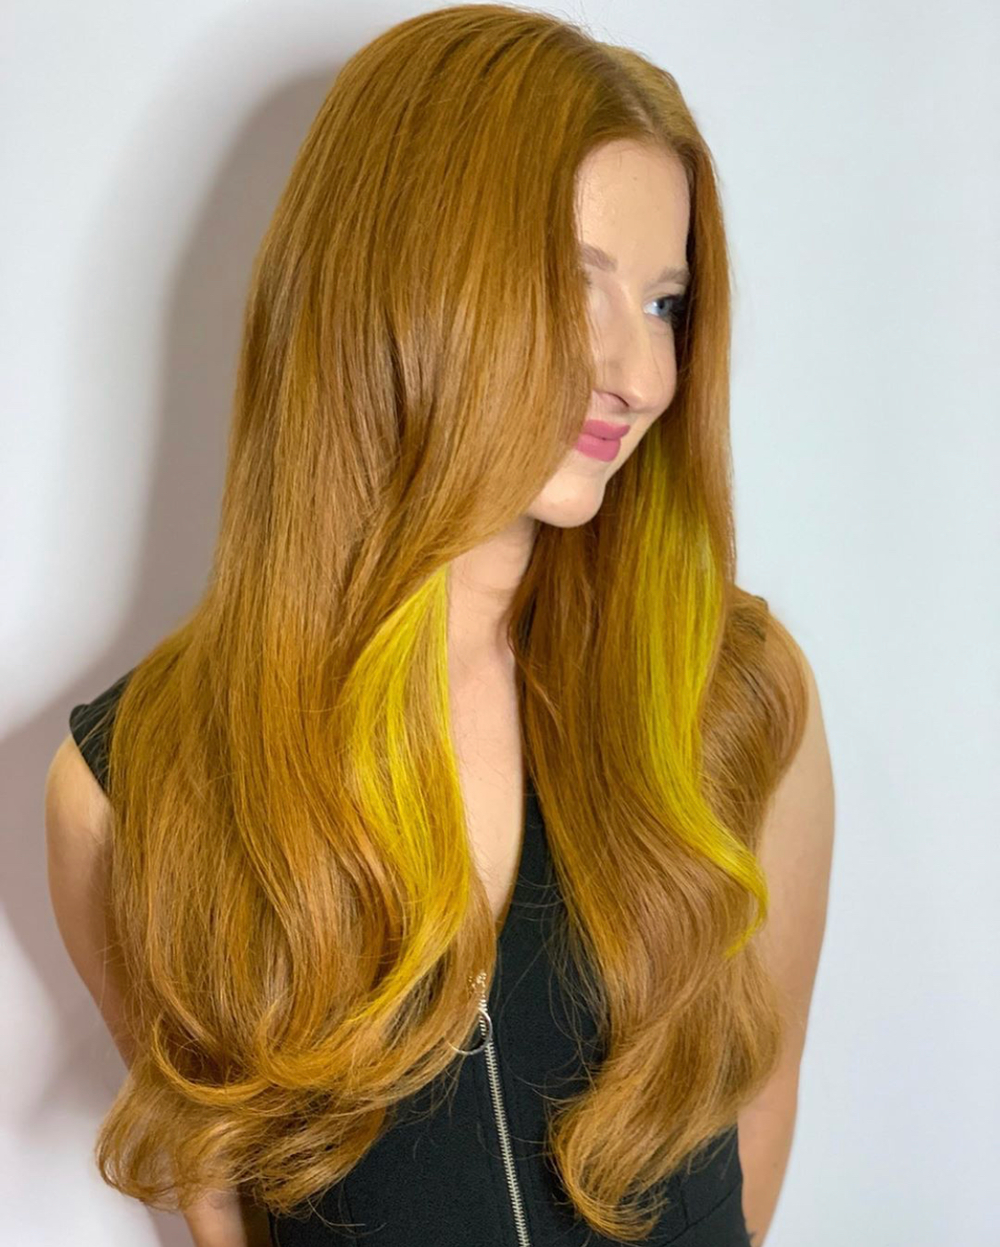 """""""The appropriate amount of natural contrast in your red extension installations will ensure the most seamless and natural outcome,"""" says Cinalli, an artist and educator for Hairtalk Hair Extensions. """"This transformation is a true ode to the power of color combination with your tape-in extension application!"""""""